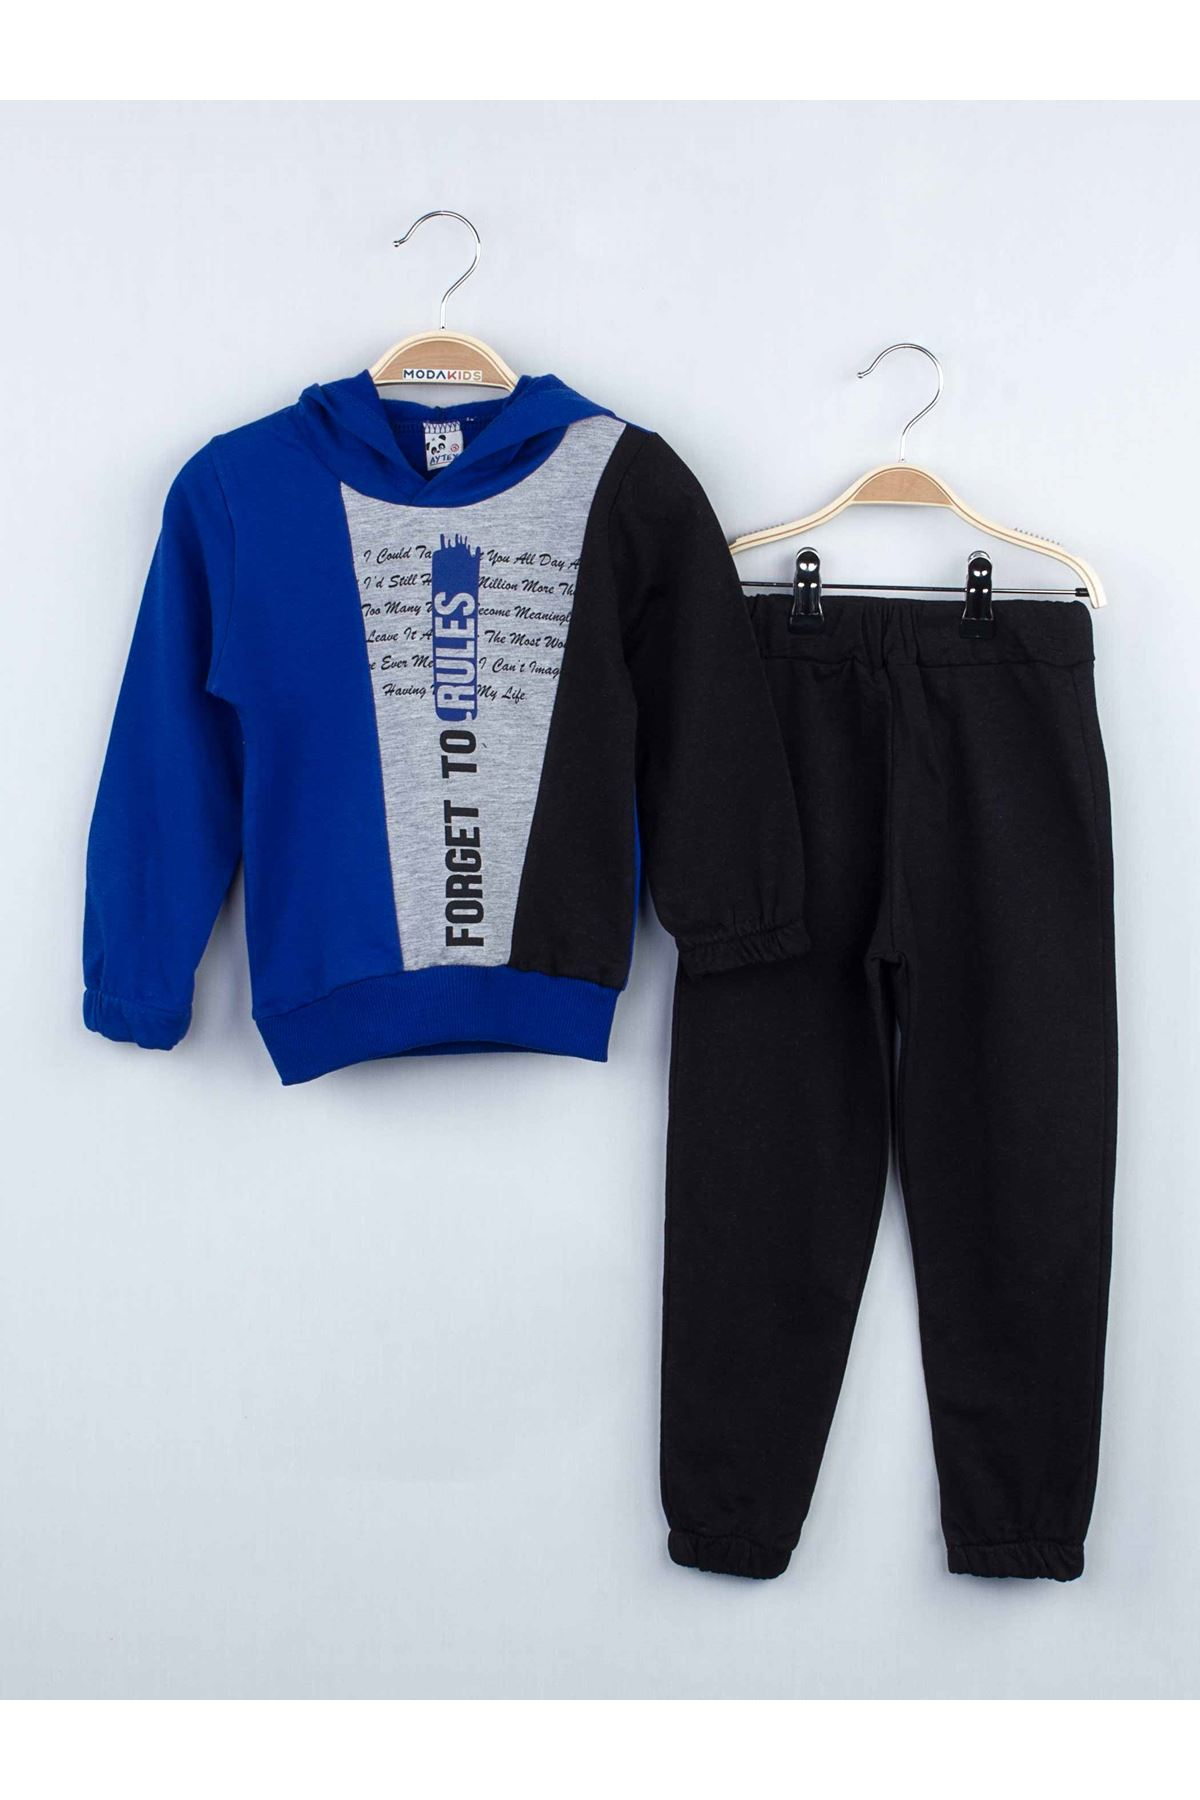 Saks Boys Child Hooded 2 Piece Bottom Tracksuit Suit Top Sweat Wear Kids Outfit Seasonal 2021 Fashion Cotton Daily Daily use Mod